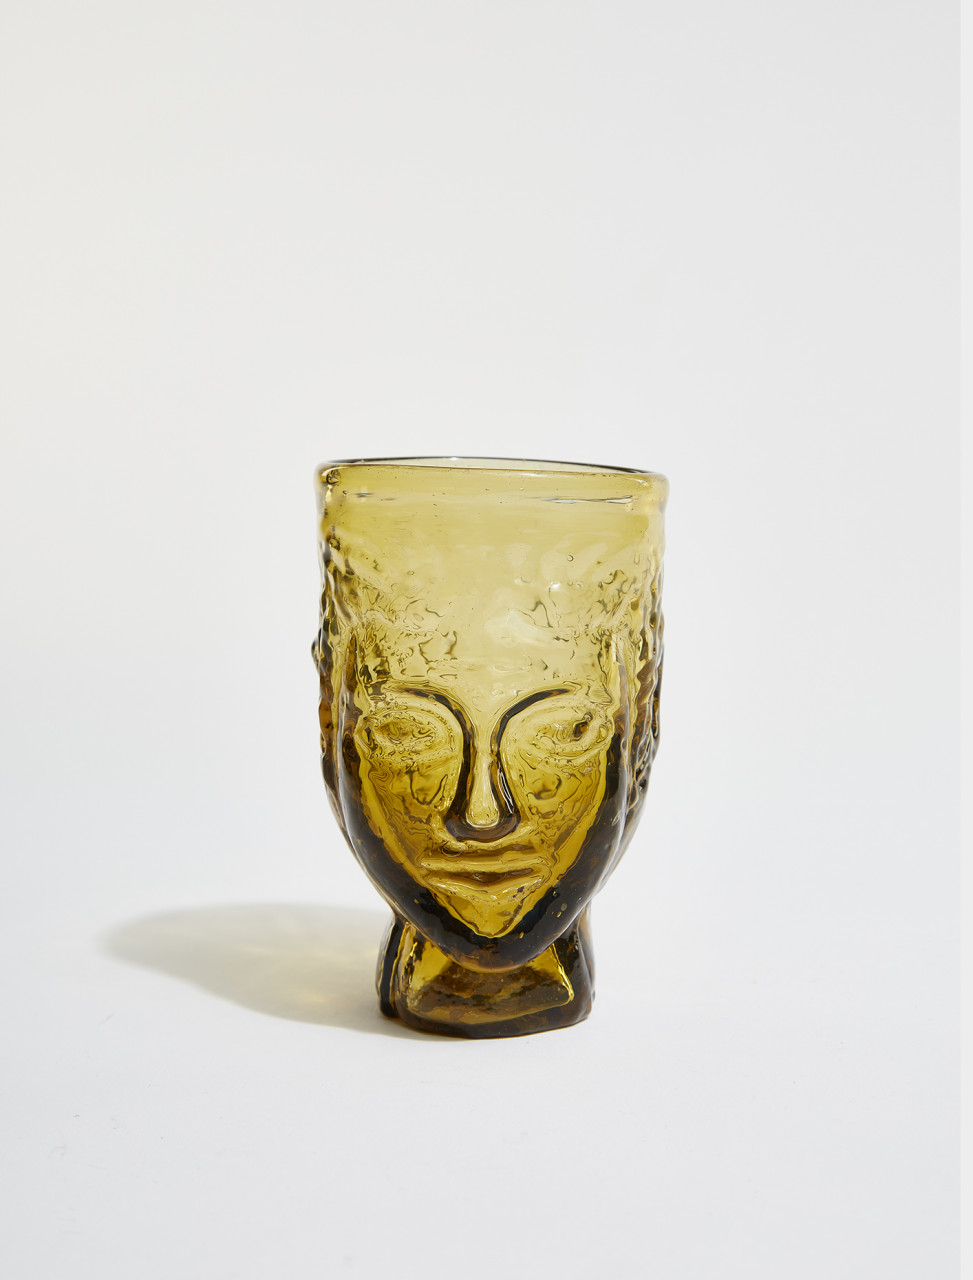 87DYELLOW LA SOUFFLERIE TETE GLASS IN YELLOW